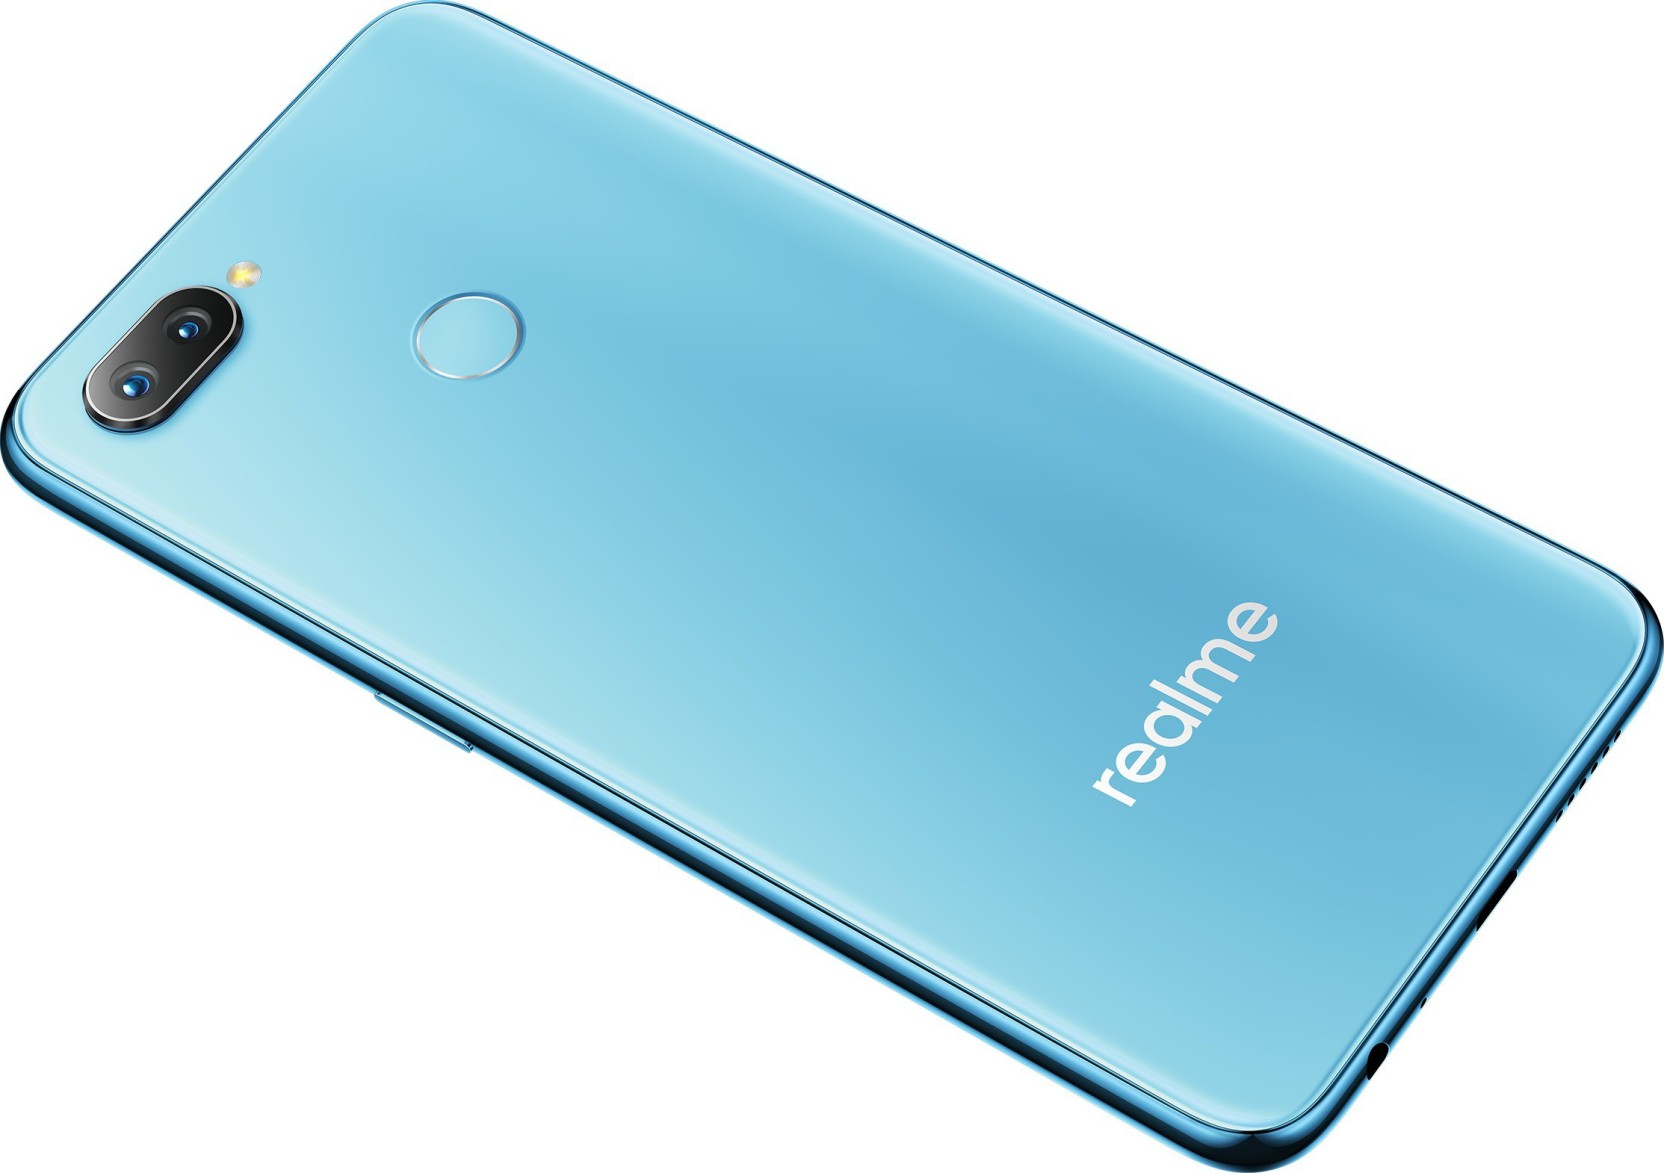 Oppo Realme 2 Pro specs, review, release date - PhonesData